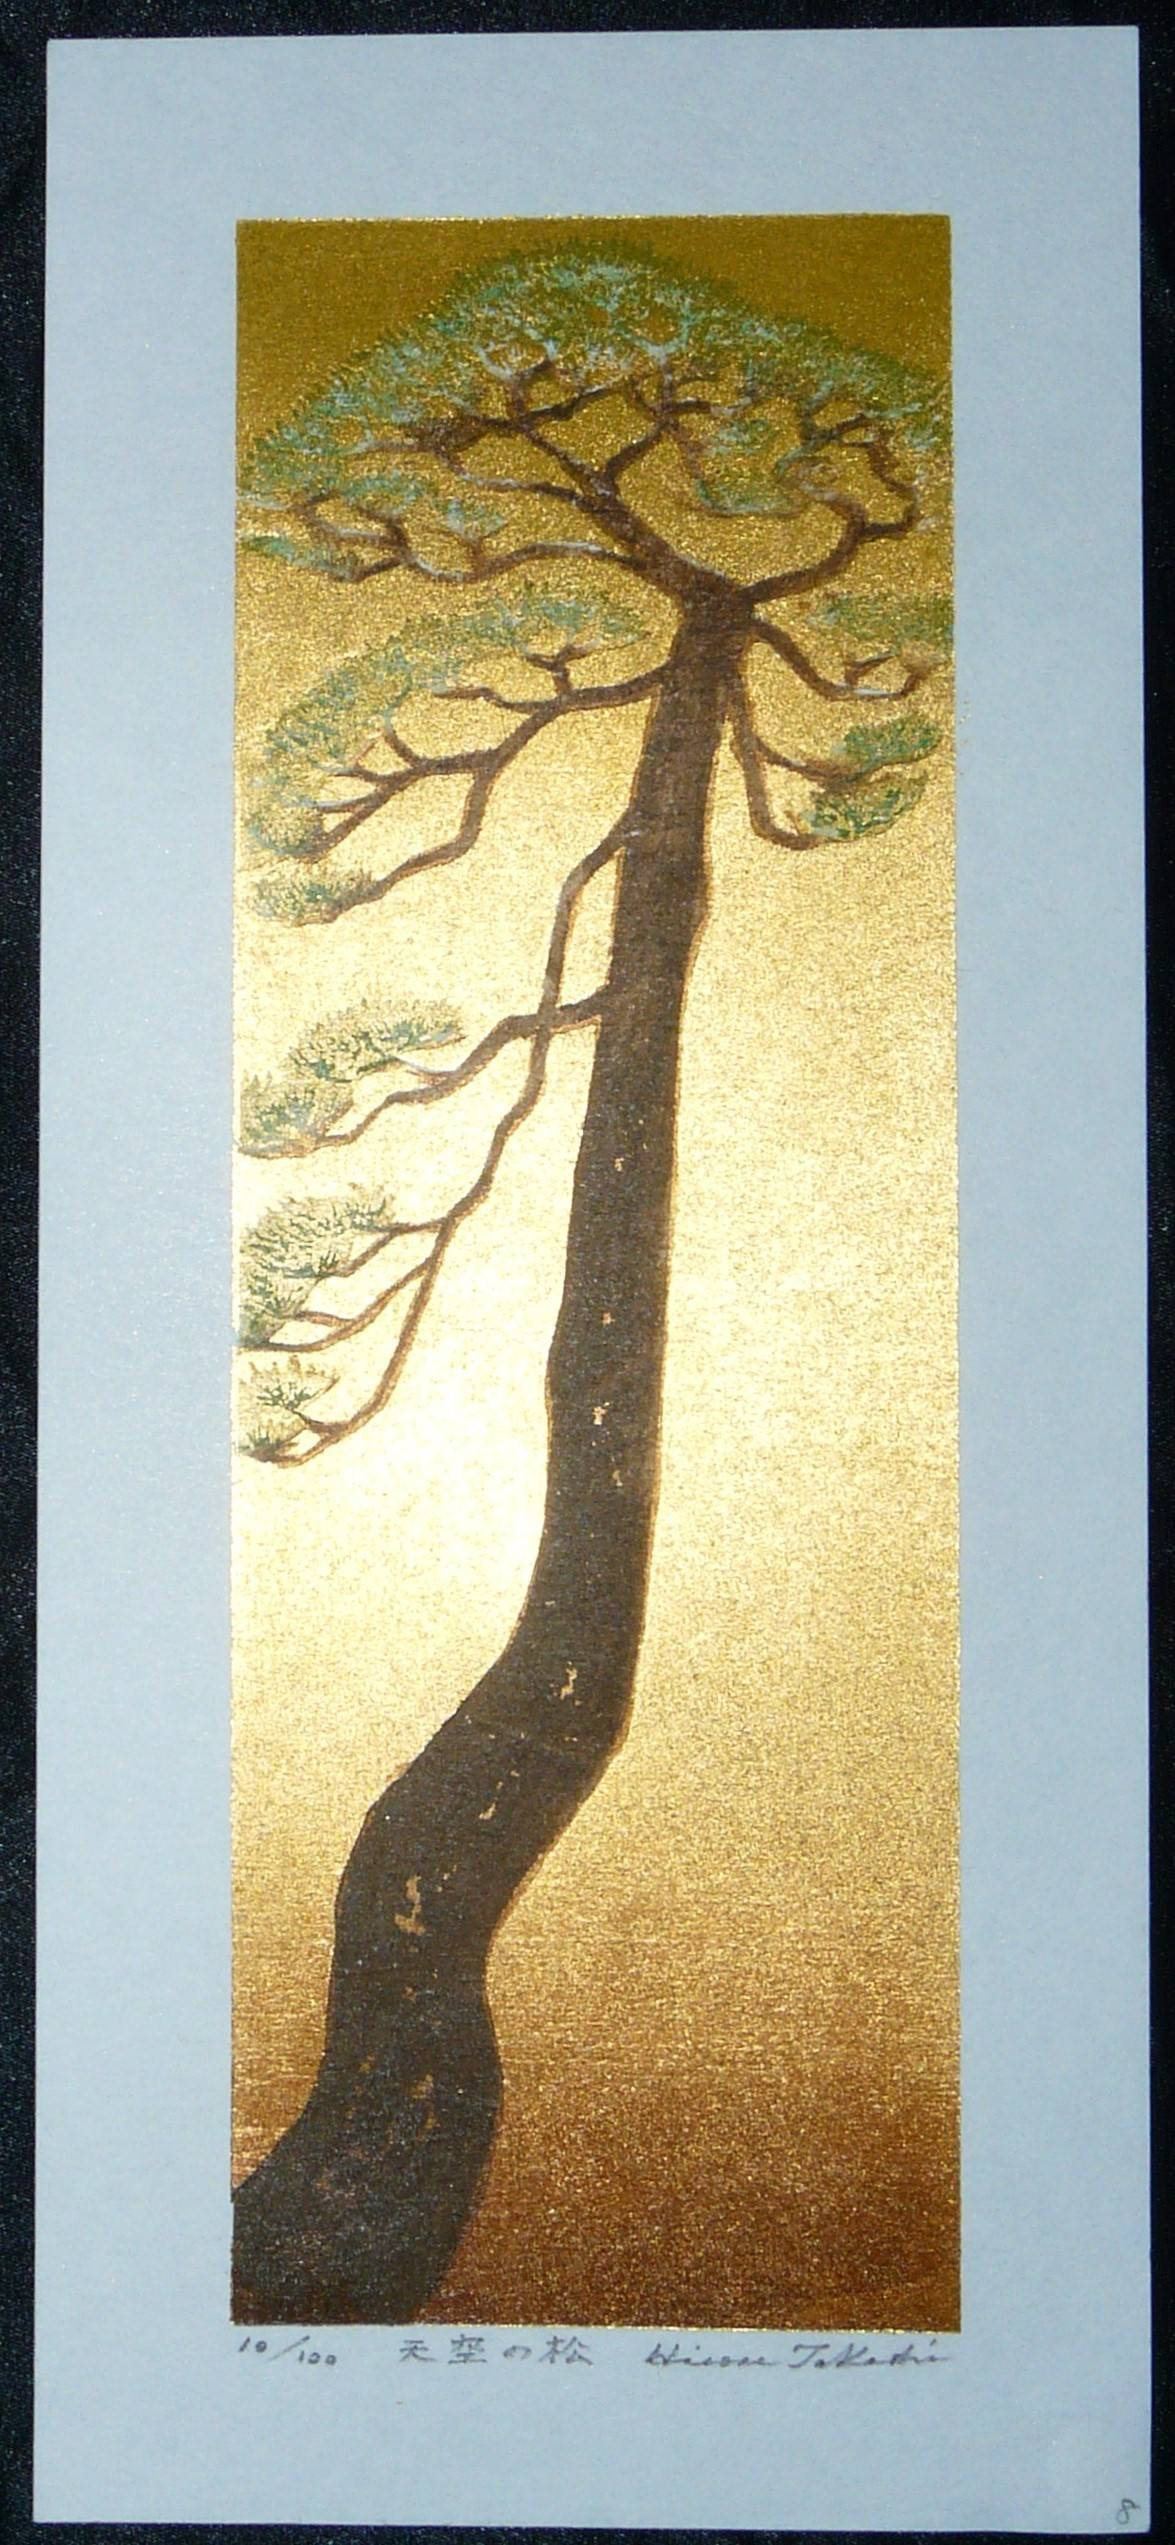 Takashi Hirose: #P4202 PINE TREE IN THE SKY